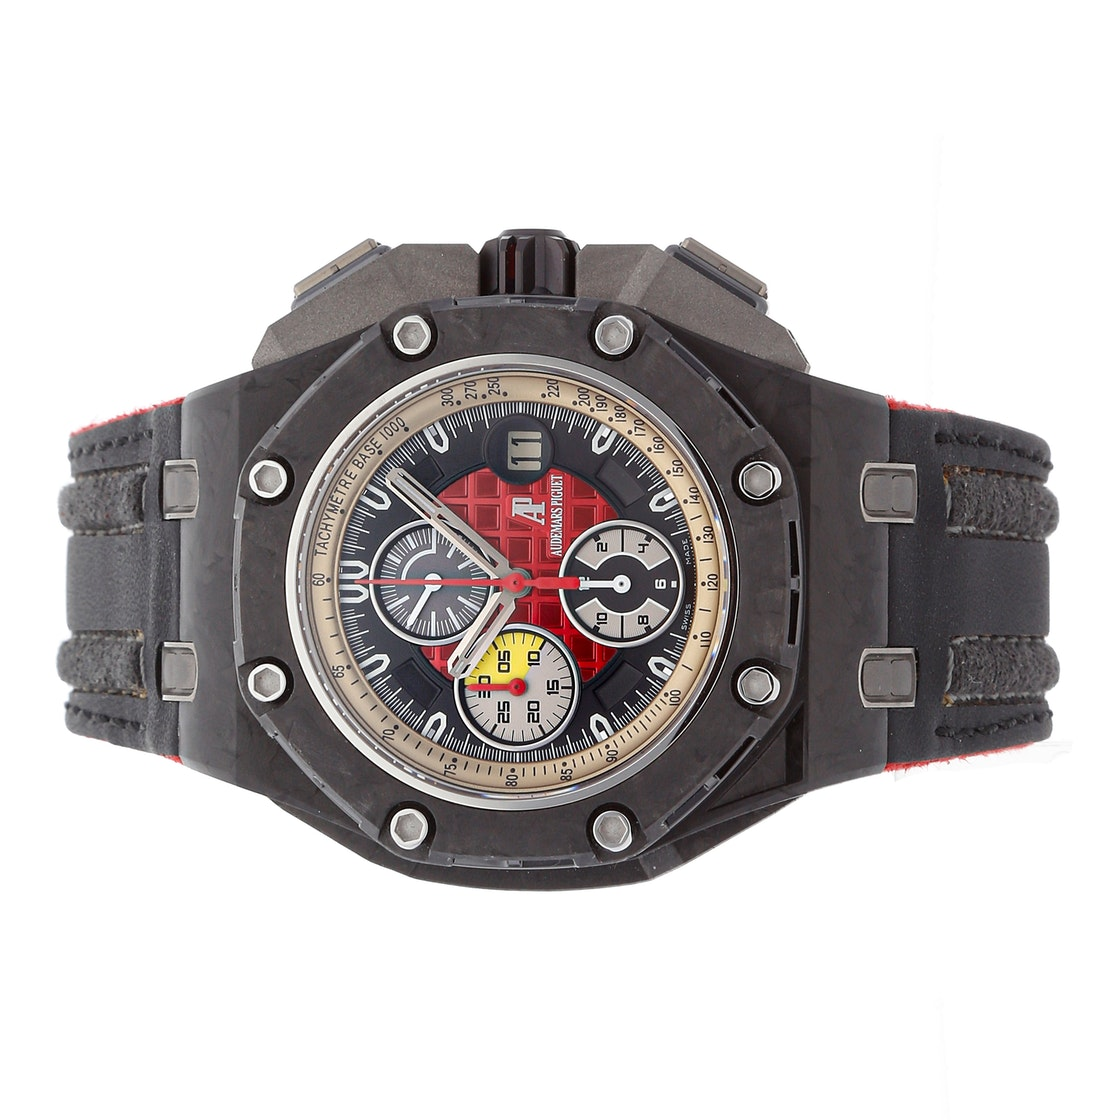 Audemars Piguet Royal Oak Offshore Grand Prix Chronograph Limited Edition 26290IO.OO.A001VE.01